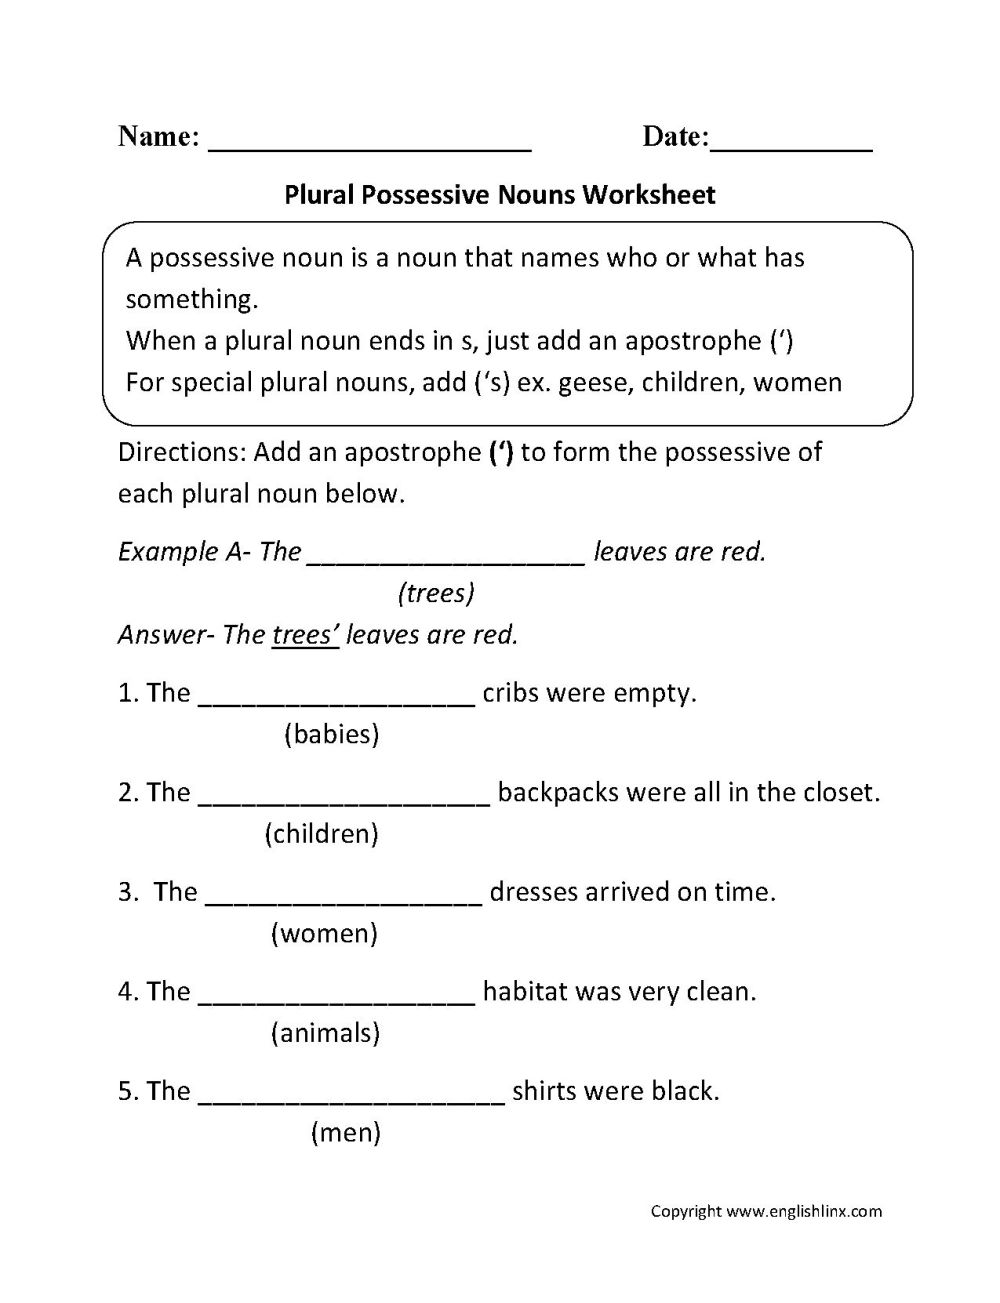 medium resolution of Pronoun Antecedent Agreement Worksheet 3rd   Printable Worksheets and  Activities for Teachers